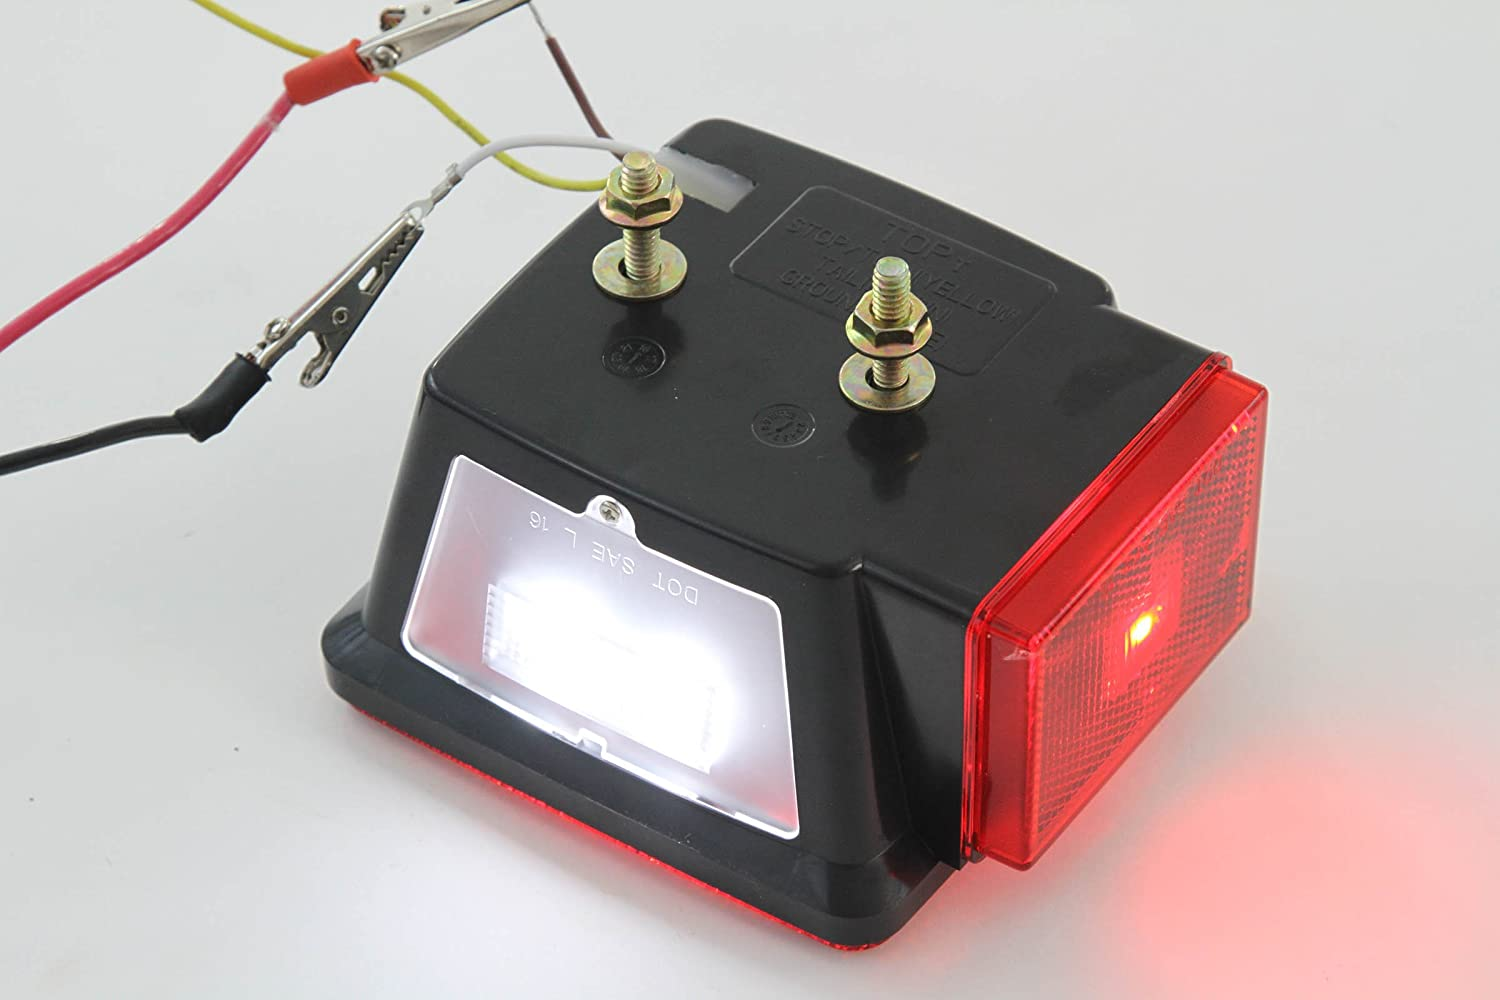 Led Square Red Trailer Turn Signal Stop 2 Light Dot Silverado Wiring Harness Splice Compliant Set L R Submersible Under 80 Automotive